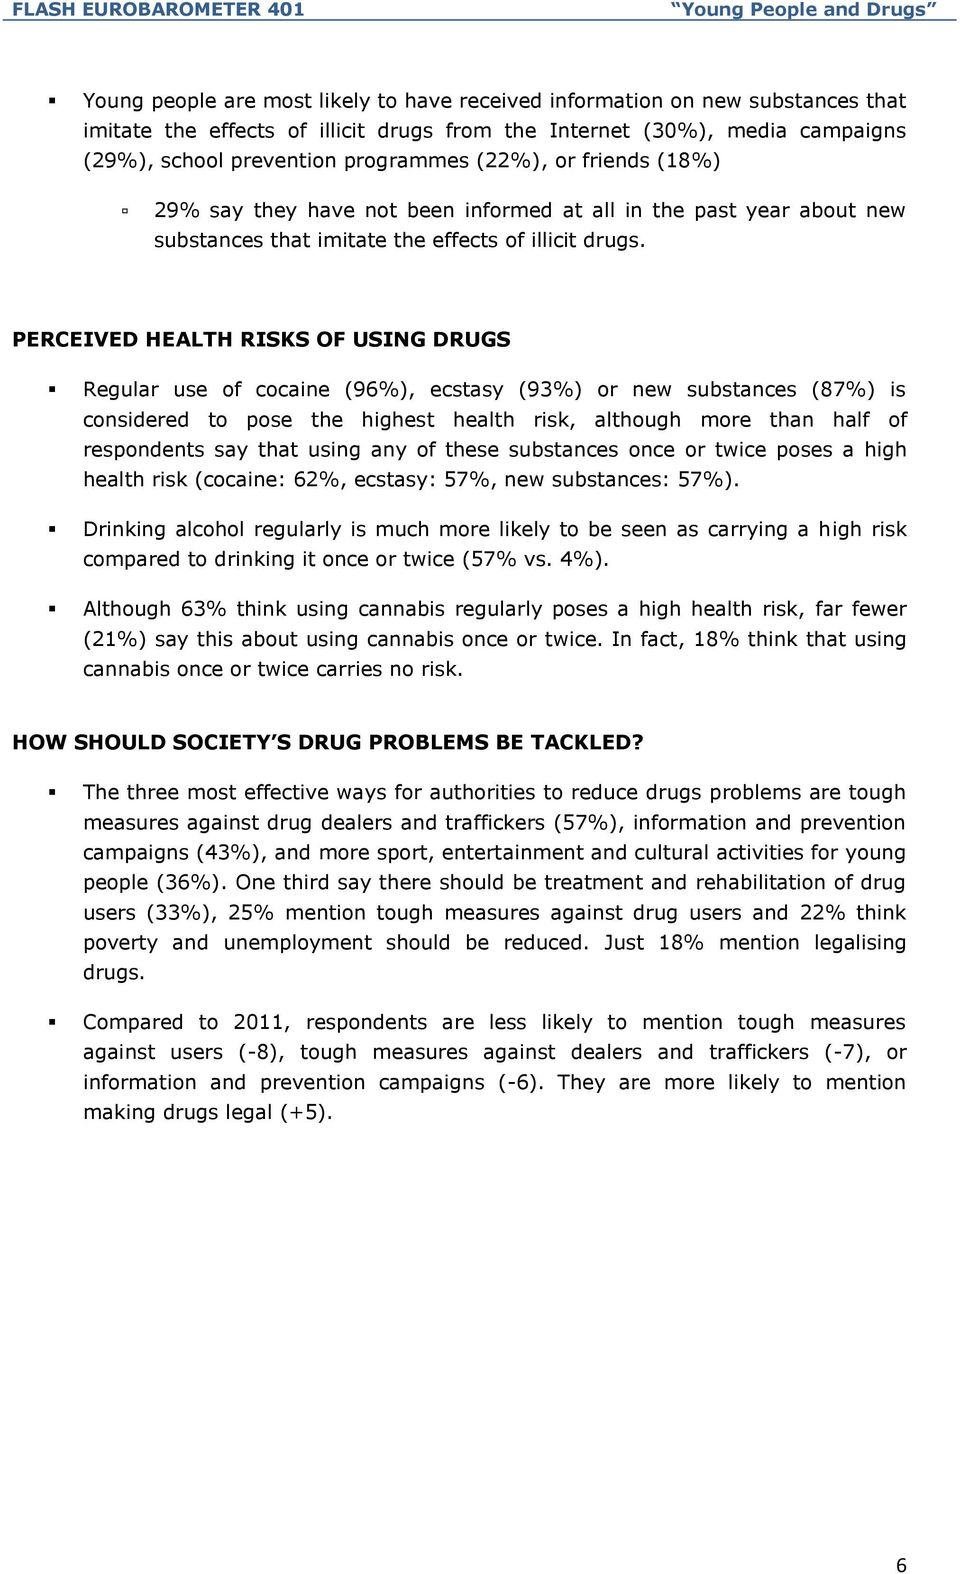 PERCEIVED HEALTH RISKS OF USING DRUGS Regular use of cocaine (96%), ecstasy (93%) or new substances (87%) is considered to pose the highest health risk, although more than half of respondents say